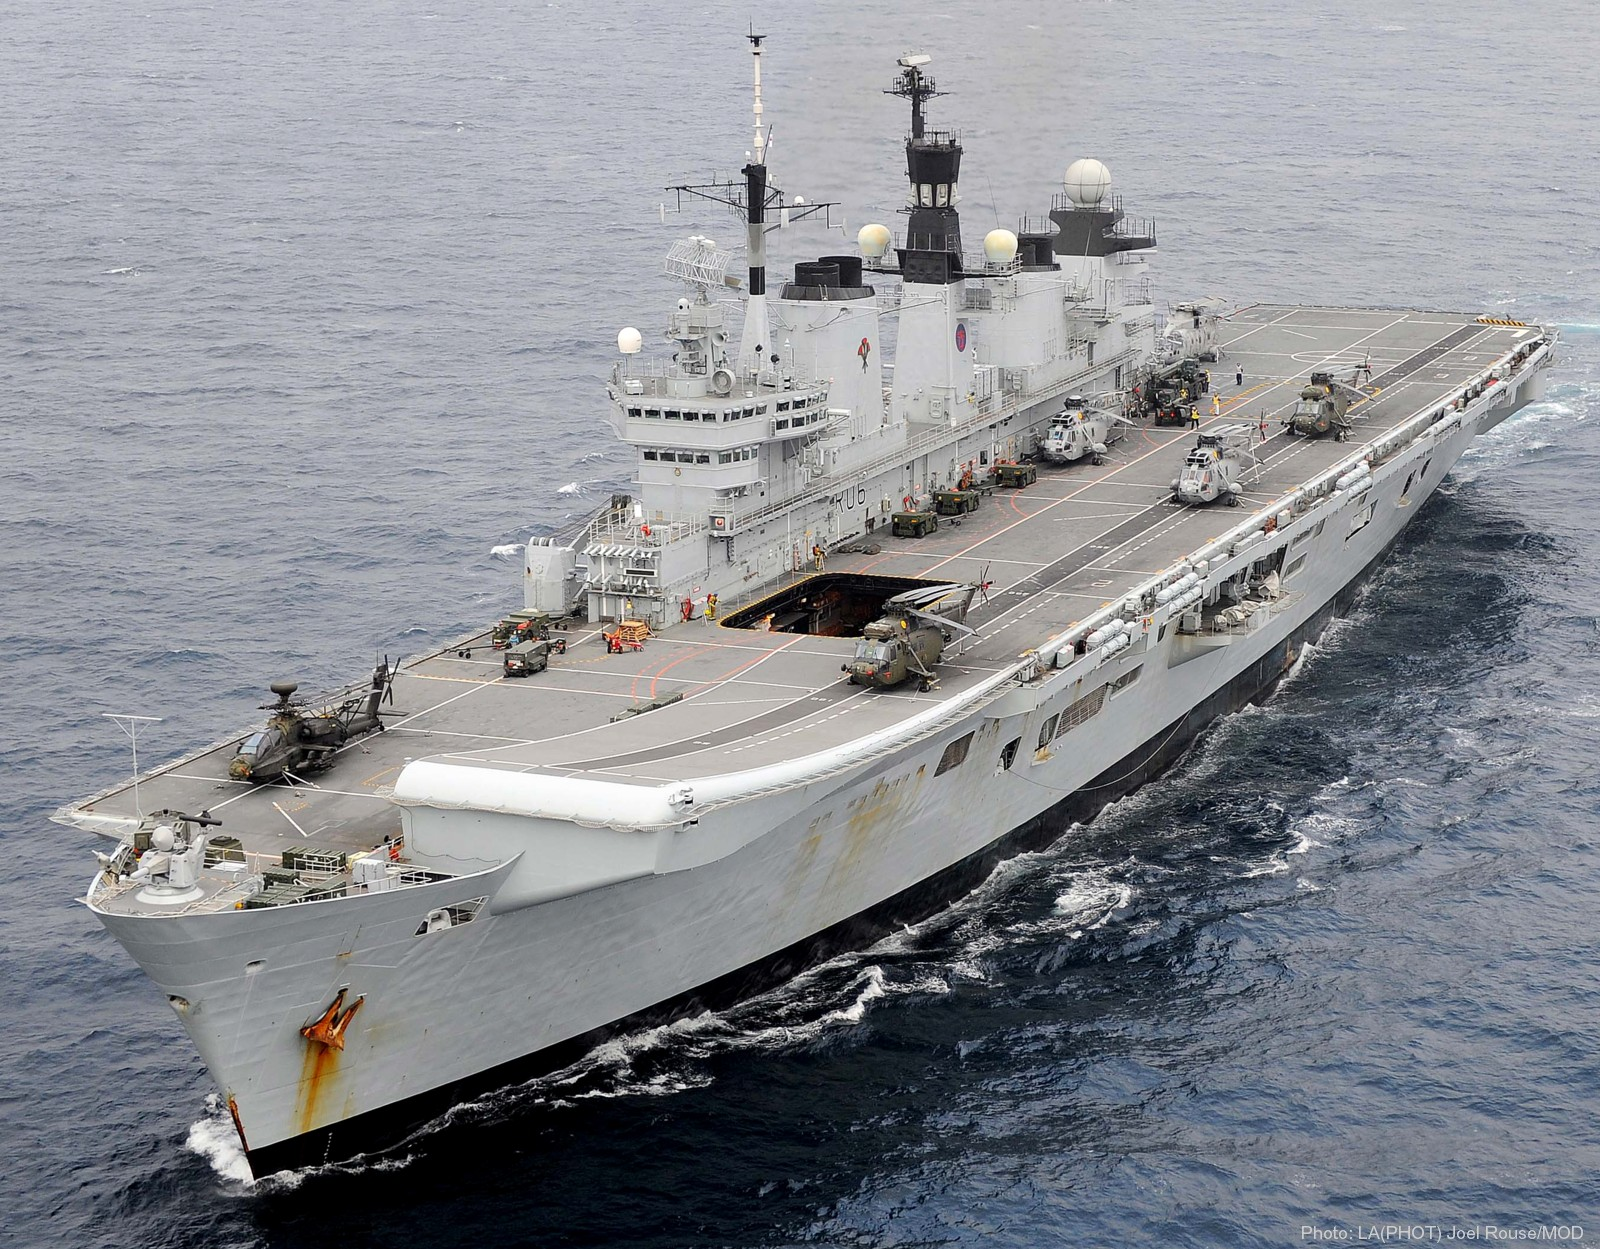 Hms illustrious r 06 invincible class aircraft carrier for Porte helicoptere